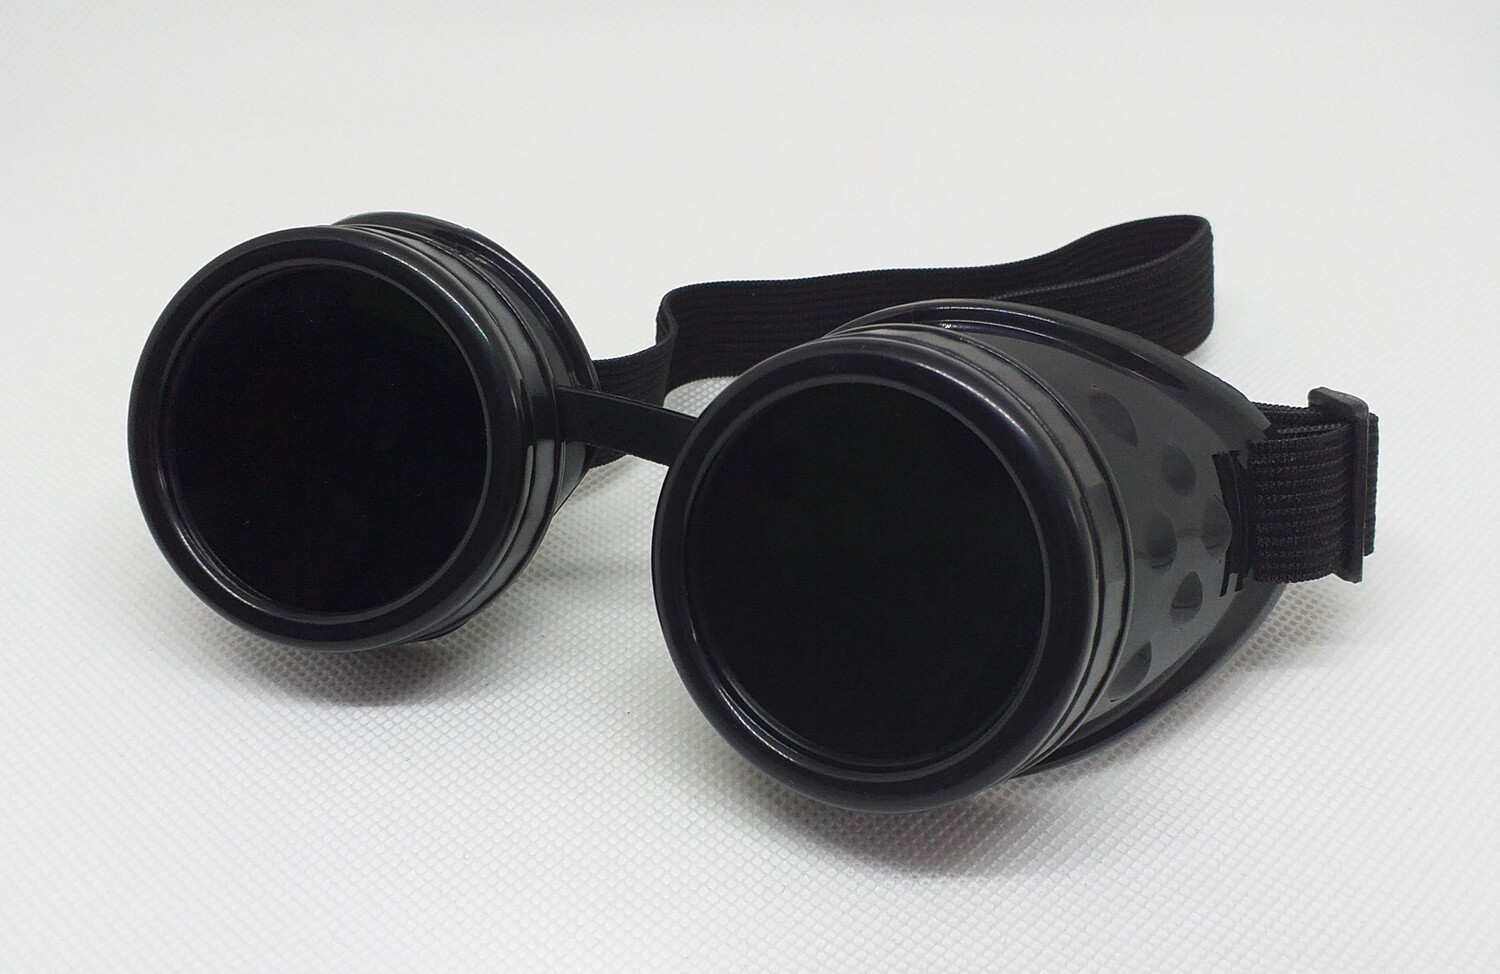 Non-Decorated, Non-Spiked Goggles